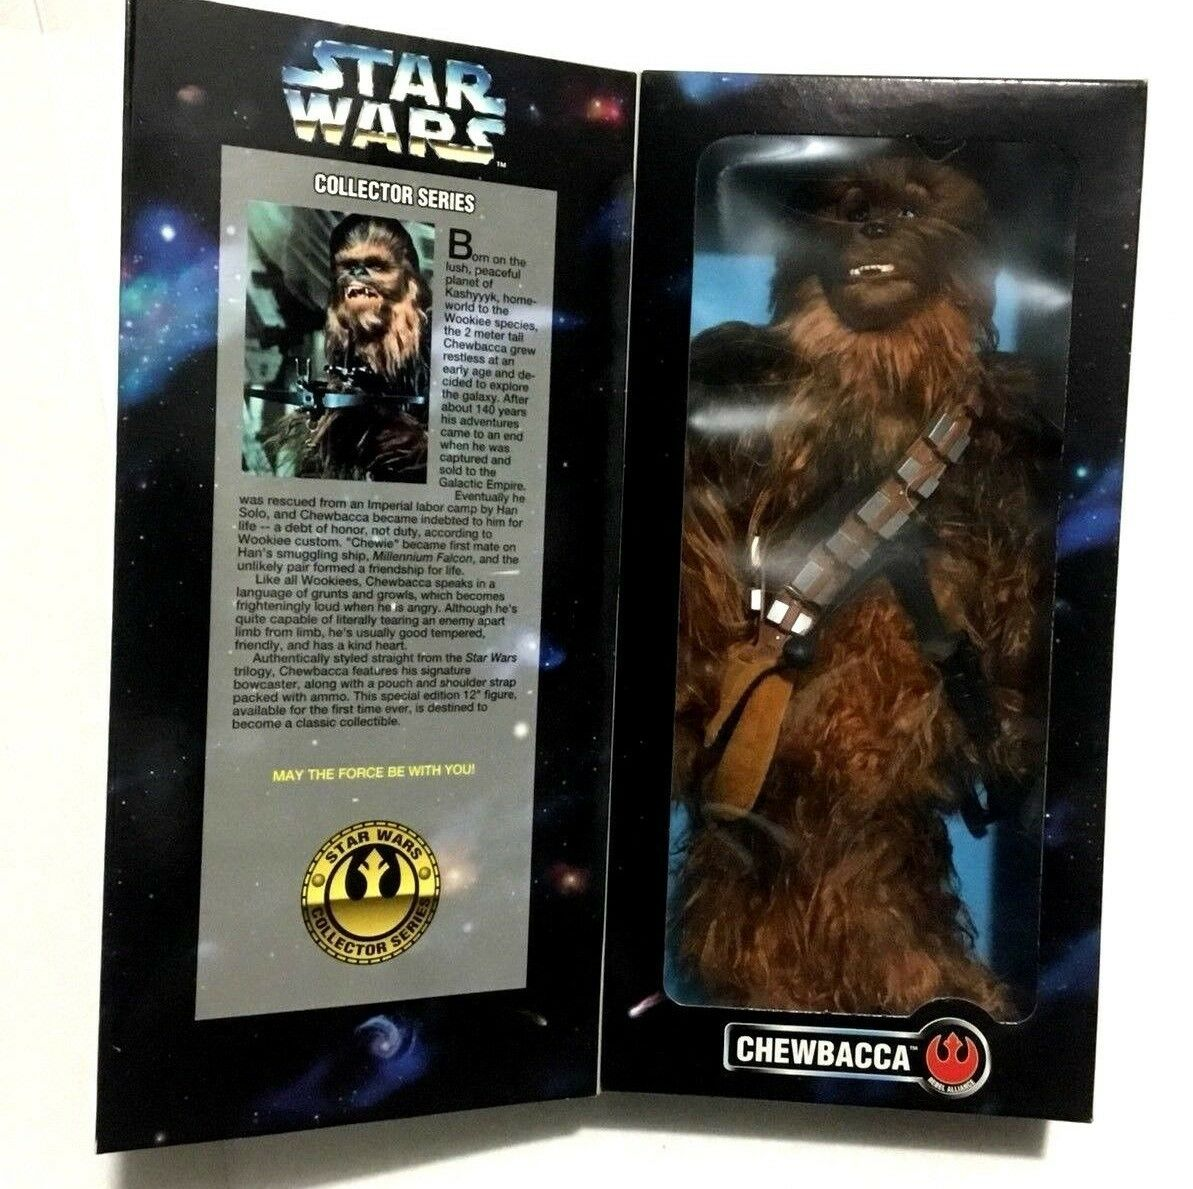 Signed by Peter Mayhew Star Wars Collector Series Chewbacca 12  Figure  27756